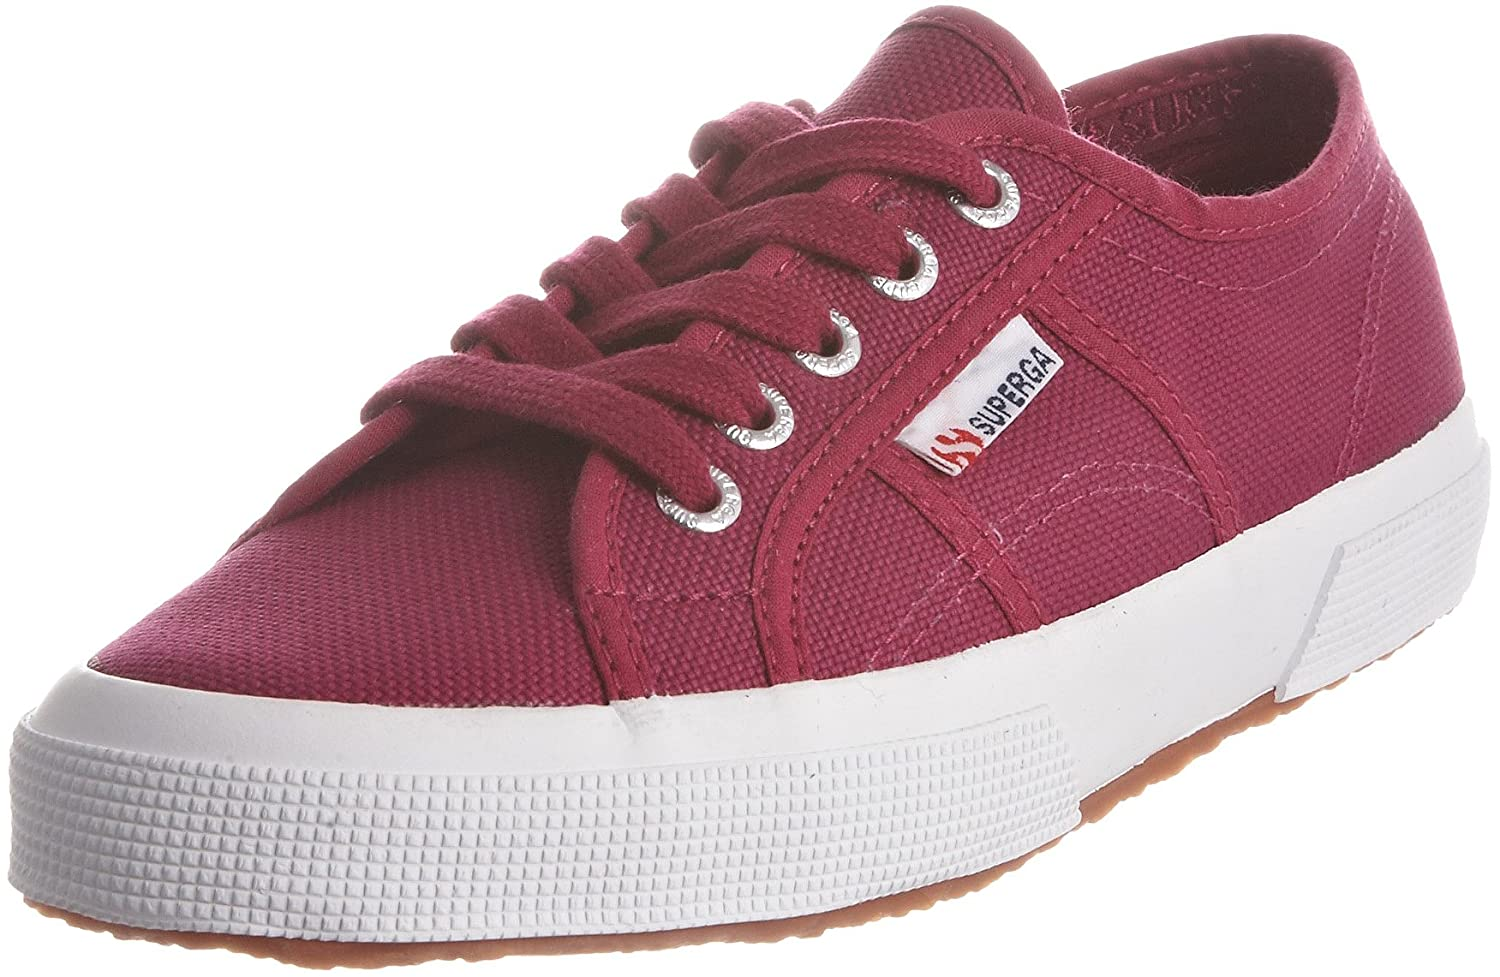 Superga B00KW40ZPO 2750 Superga Cotu Classic, Baskets Baskets mixte adulte Rouge-tr-c3-25 9184d14 - fast-weightloss-diet.space